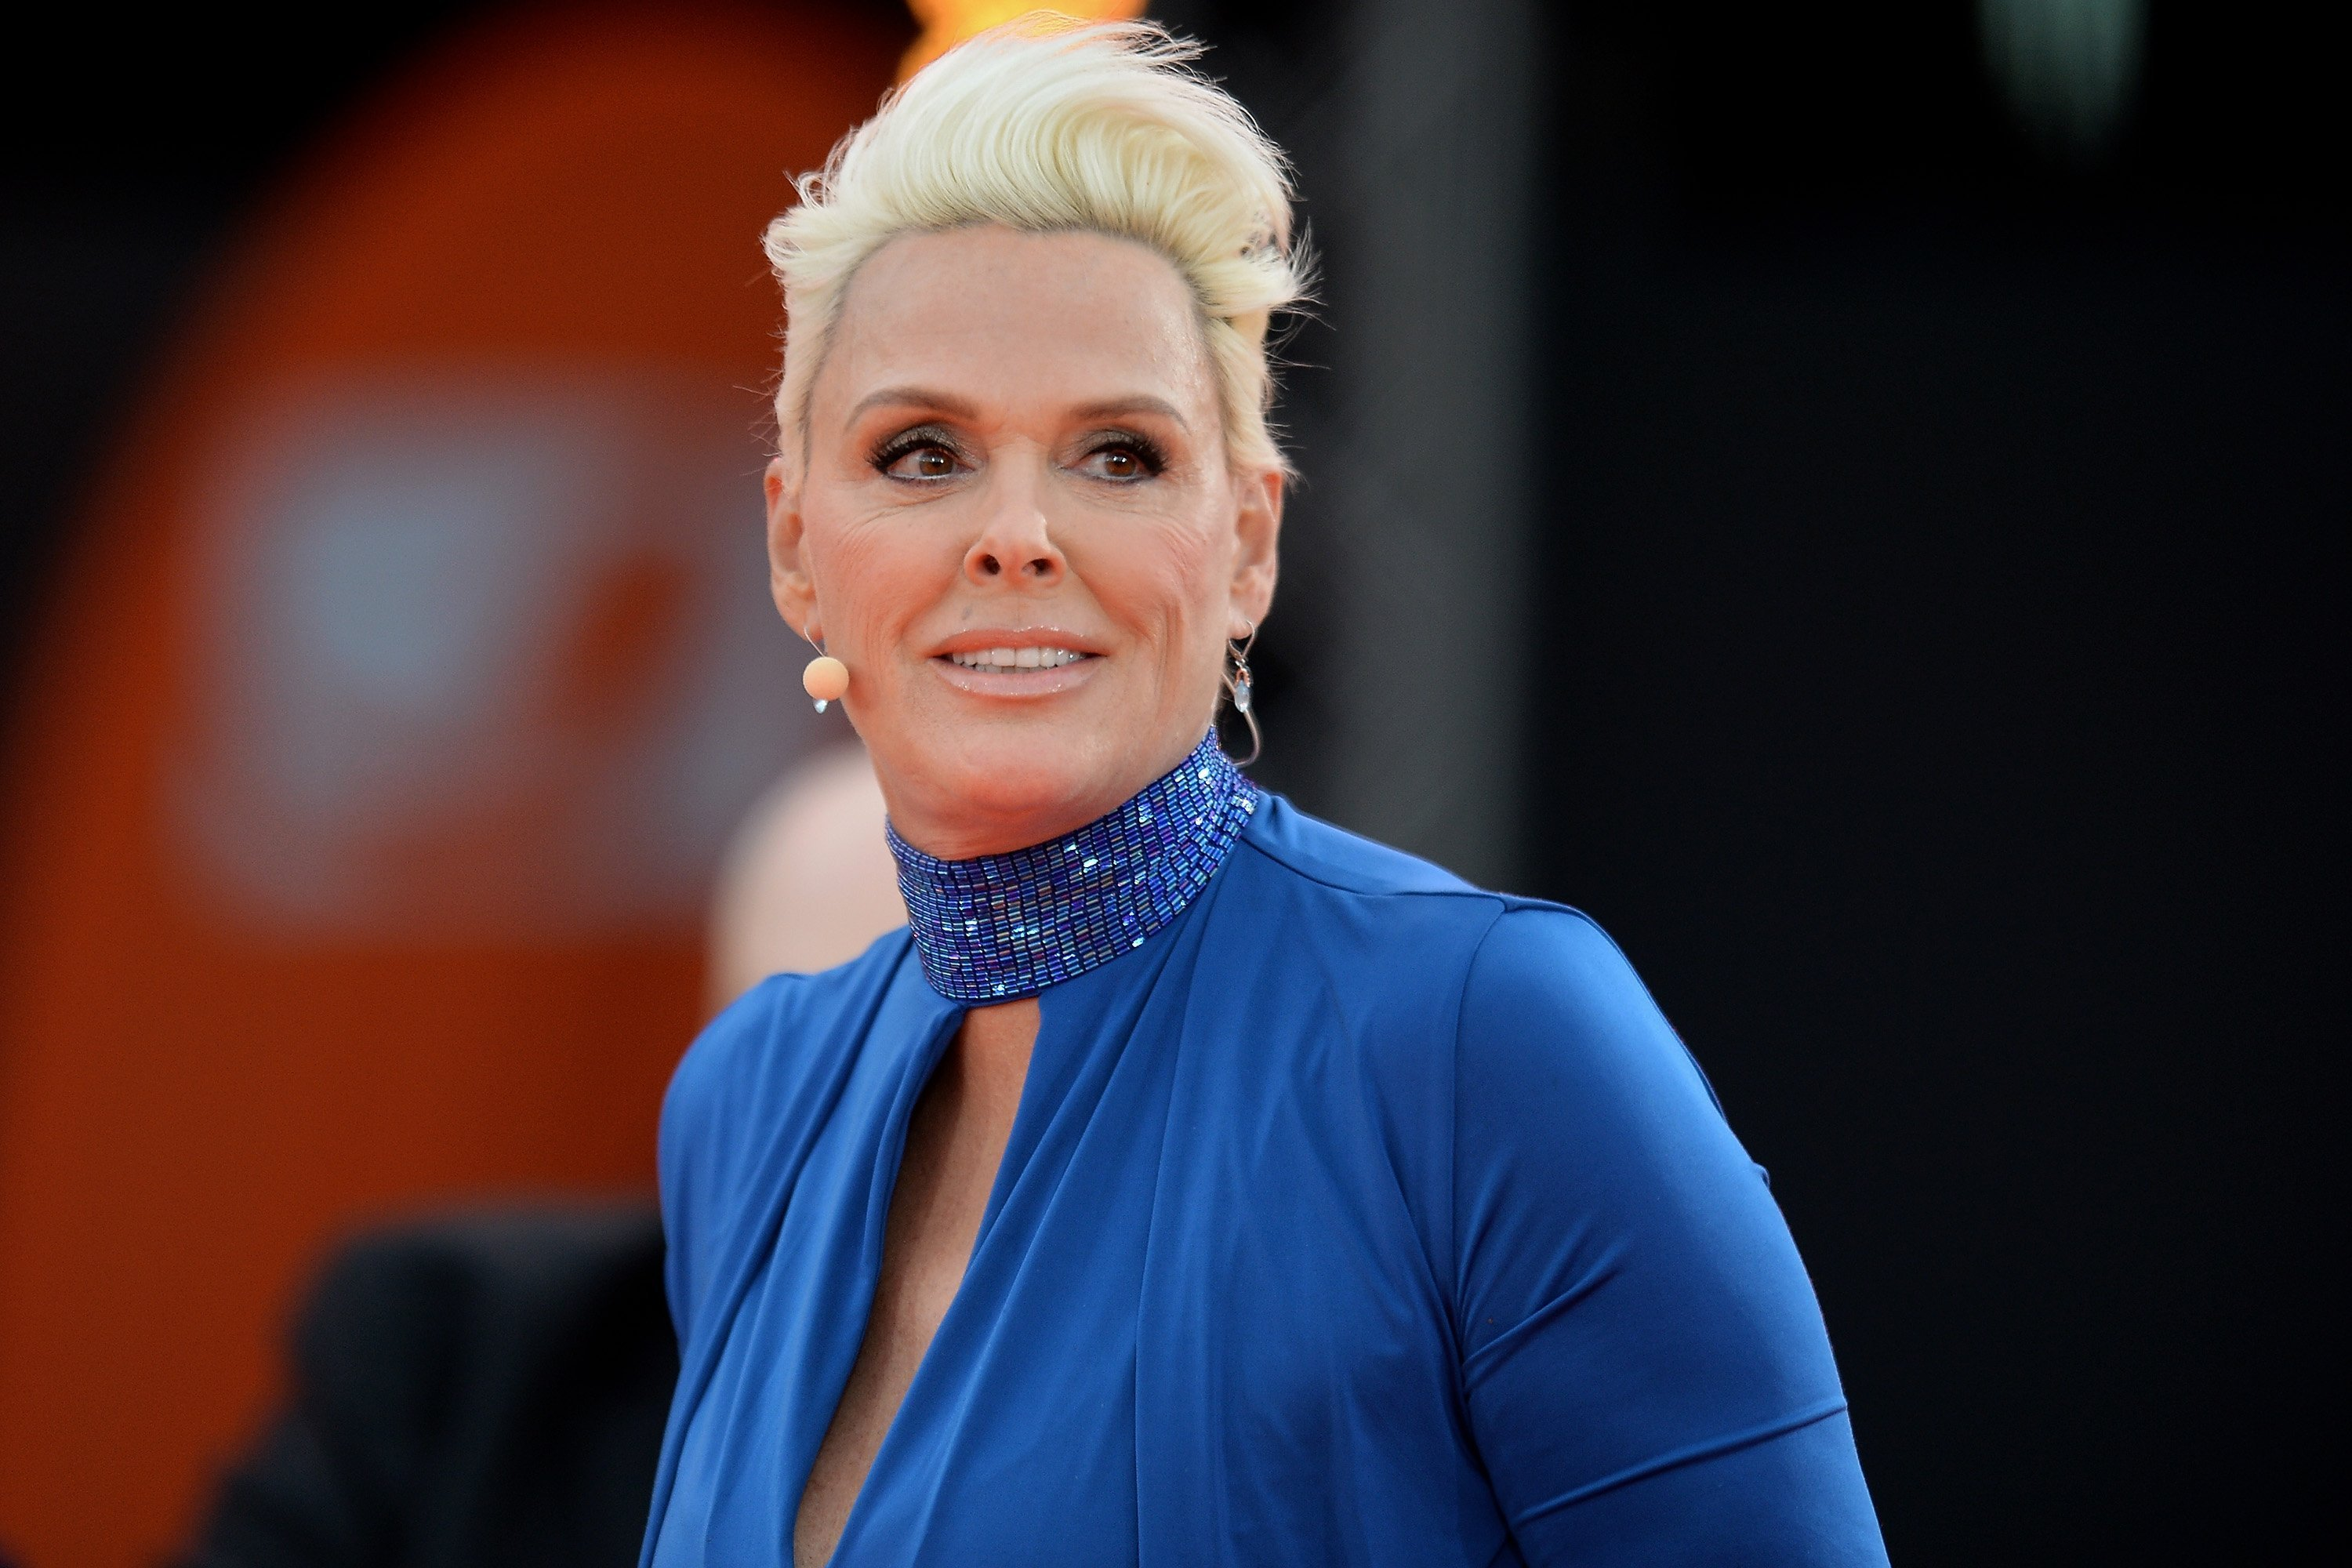 Brigitte Nielsen at the taping of the tv show 'Abenteuer Grillen - Der kabel eins BBQ-King 2015' on May 9, 2015 | Source: Getty Images